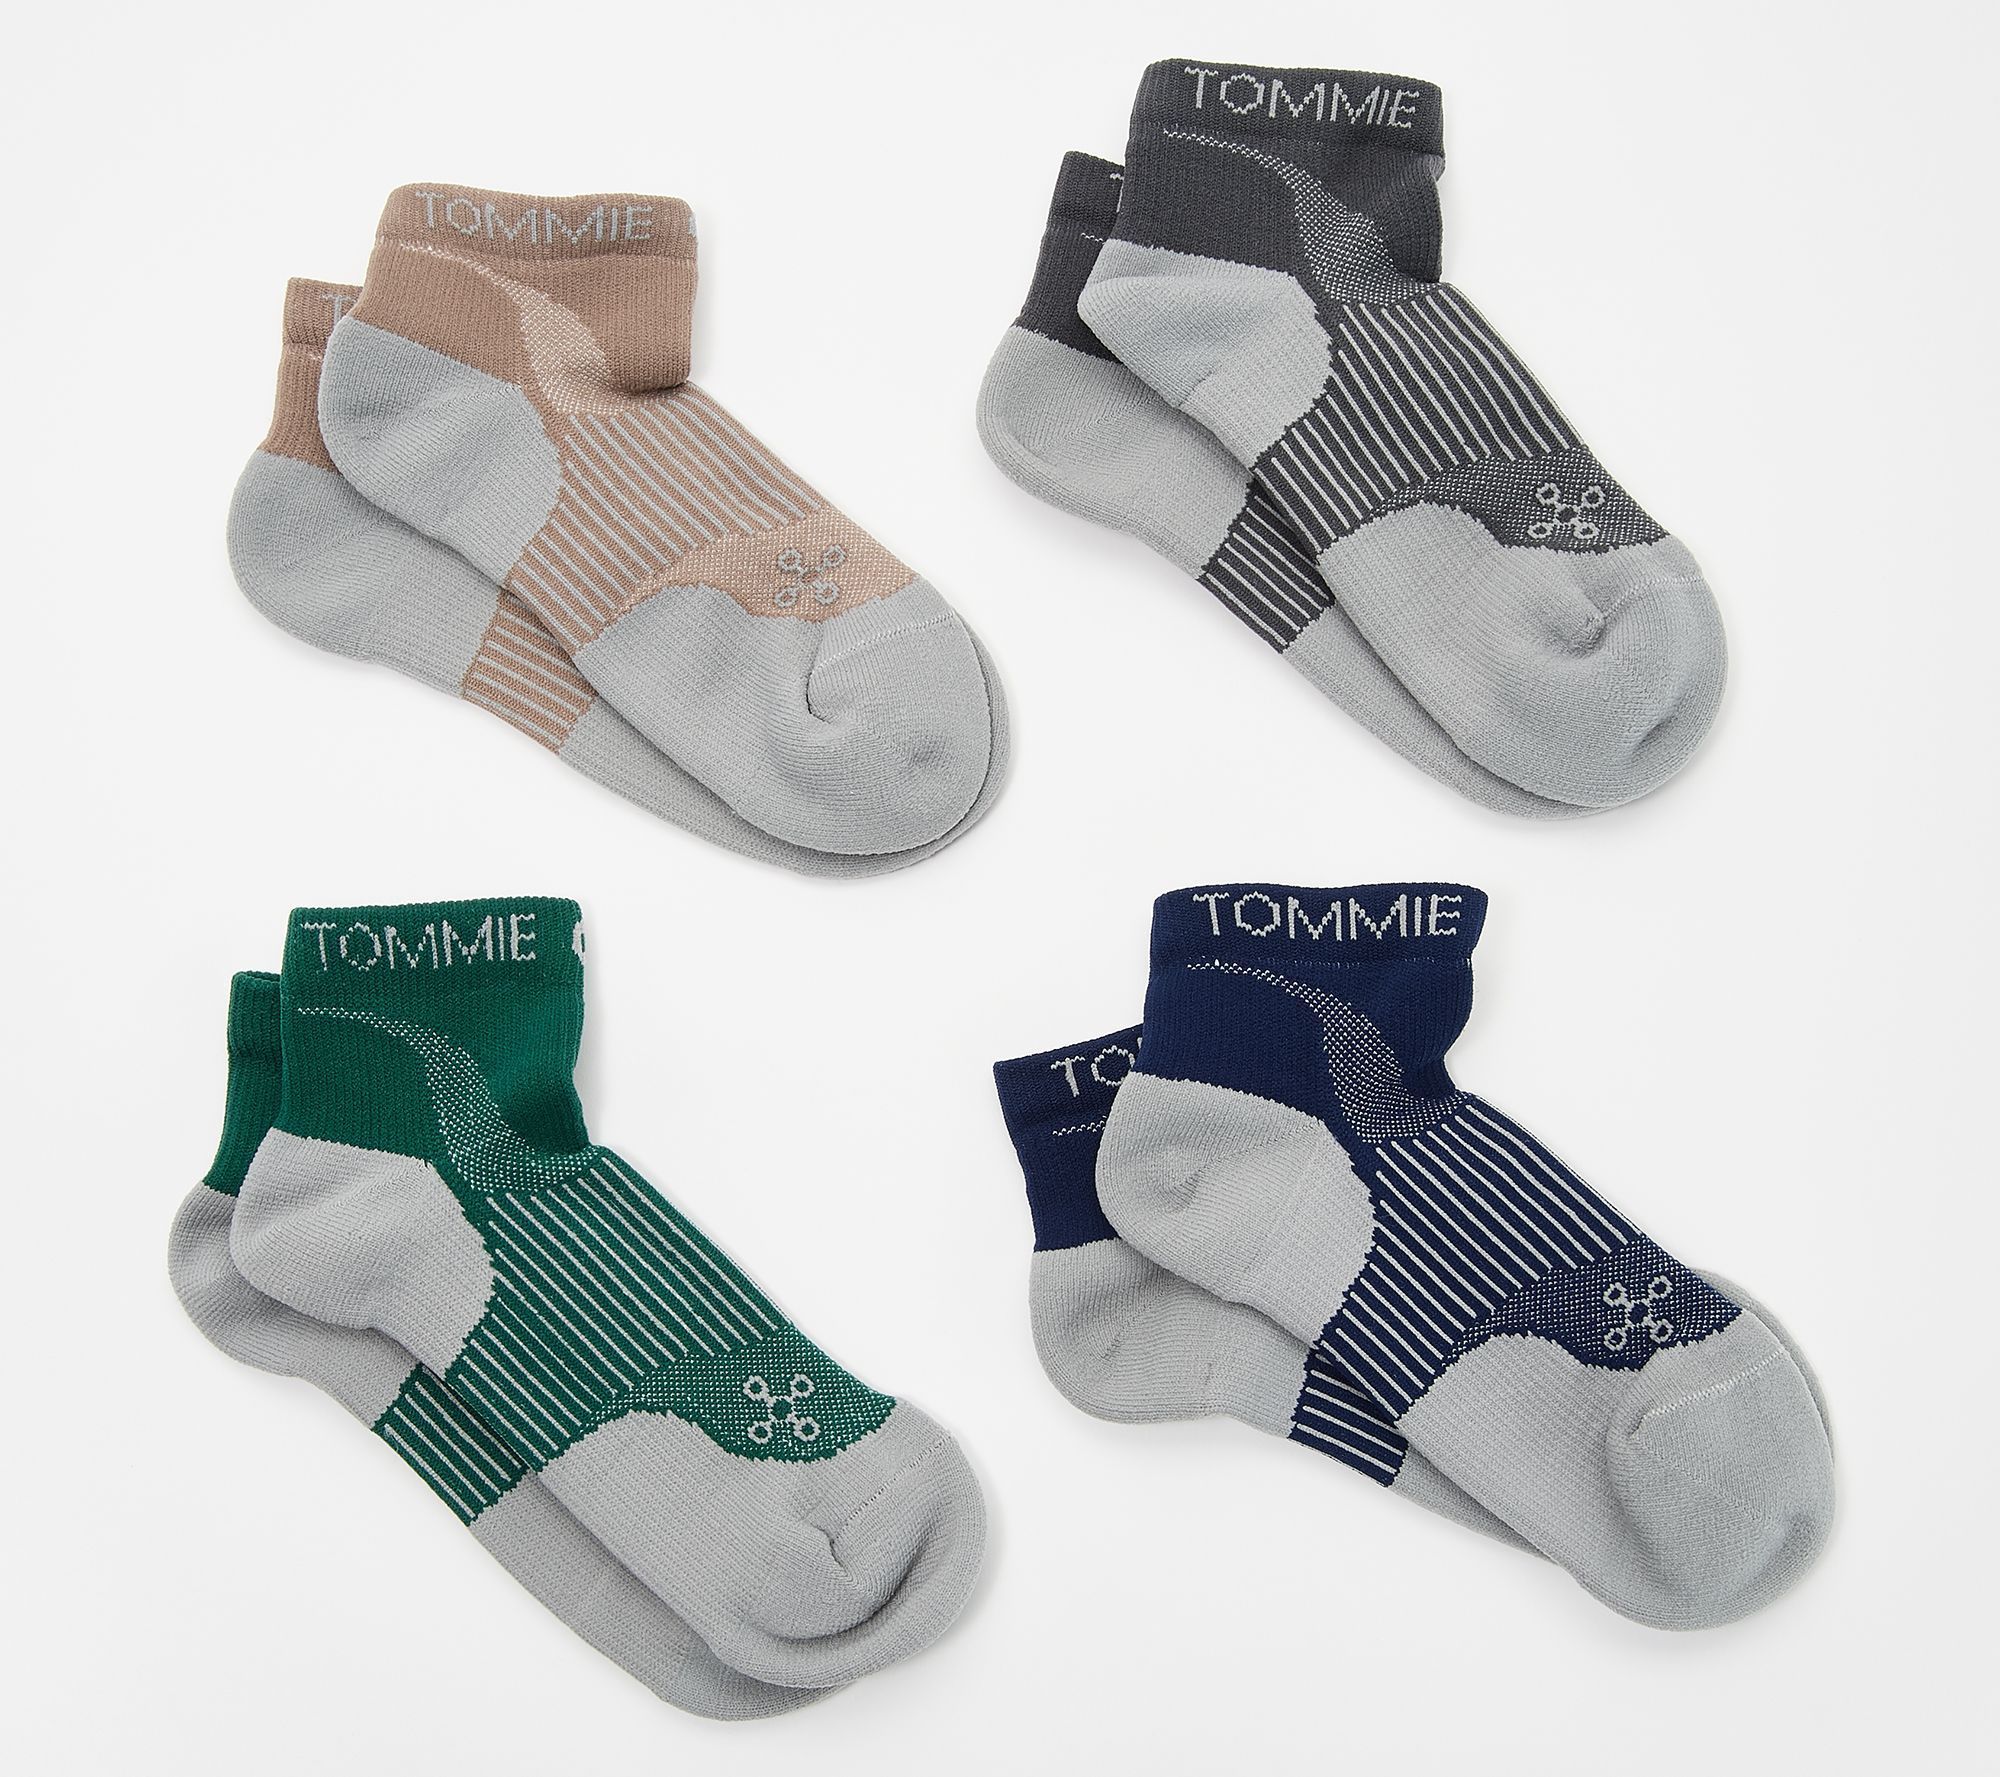 6c843cf873 Tommie Copper Men's 4-Pack Compression Ankle Socks - Page 1 — QVC.com